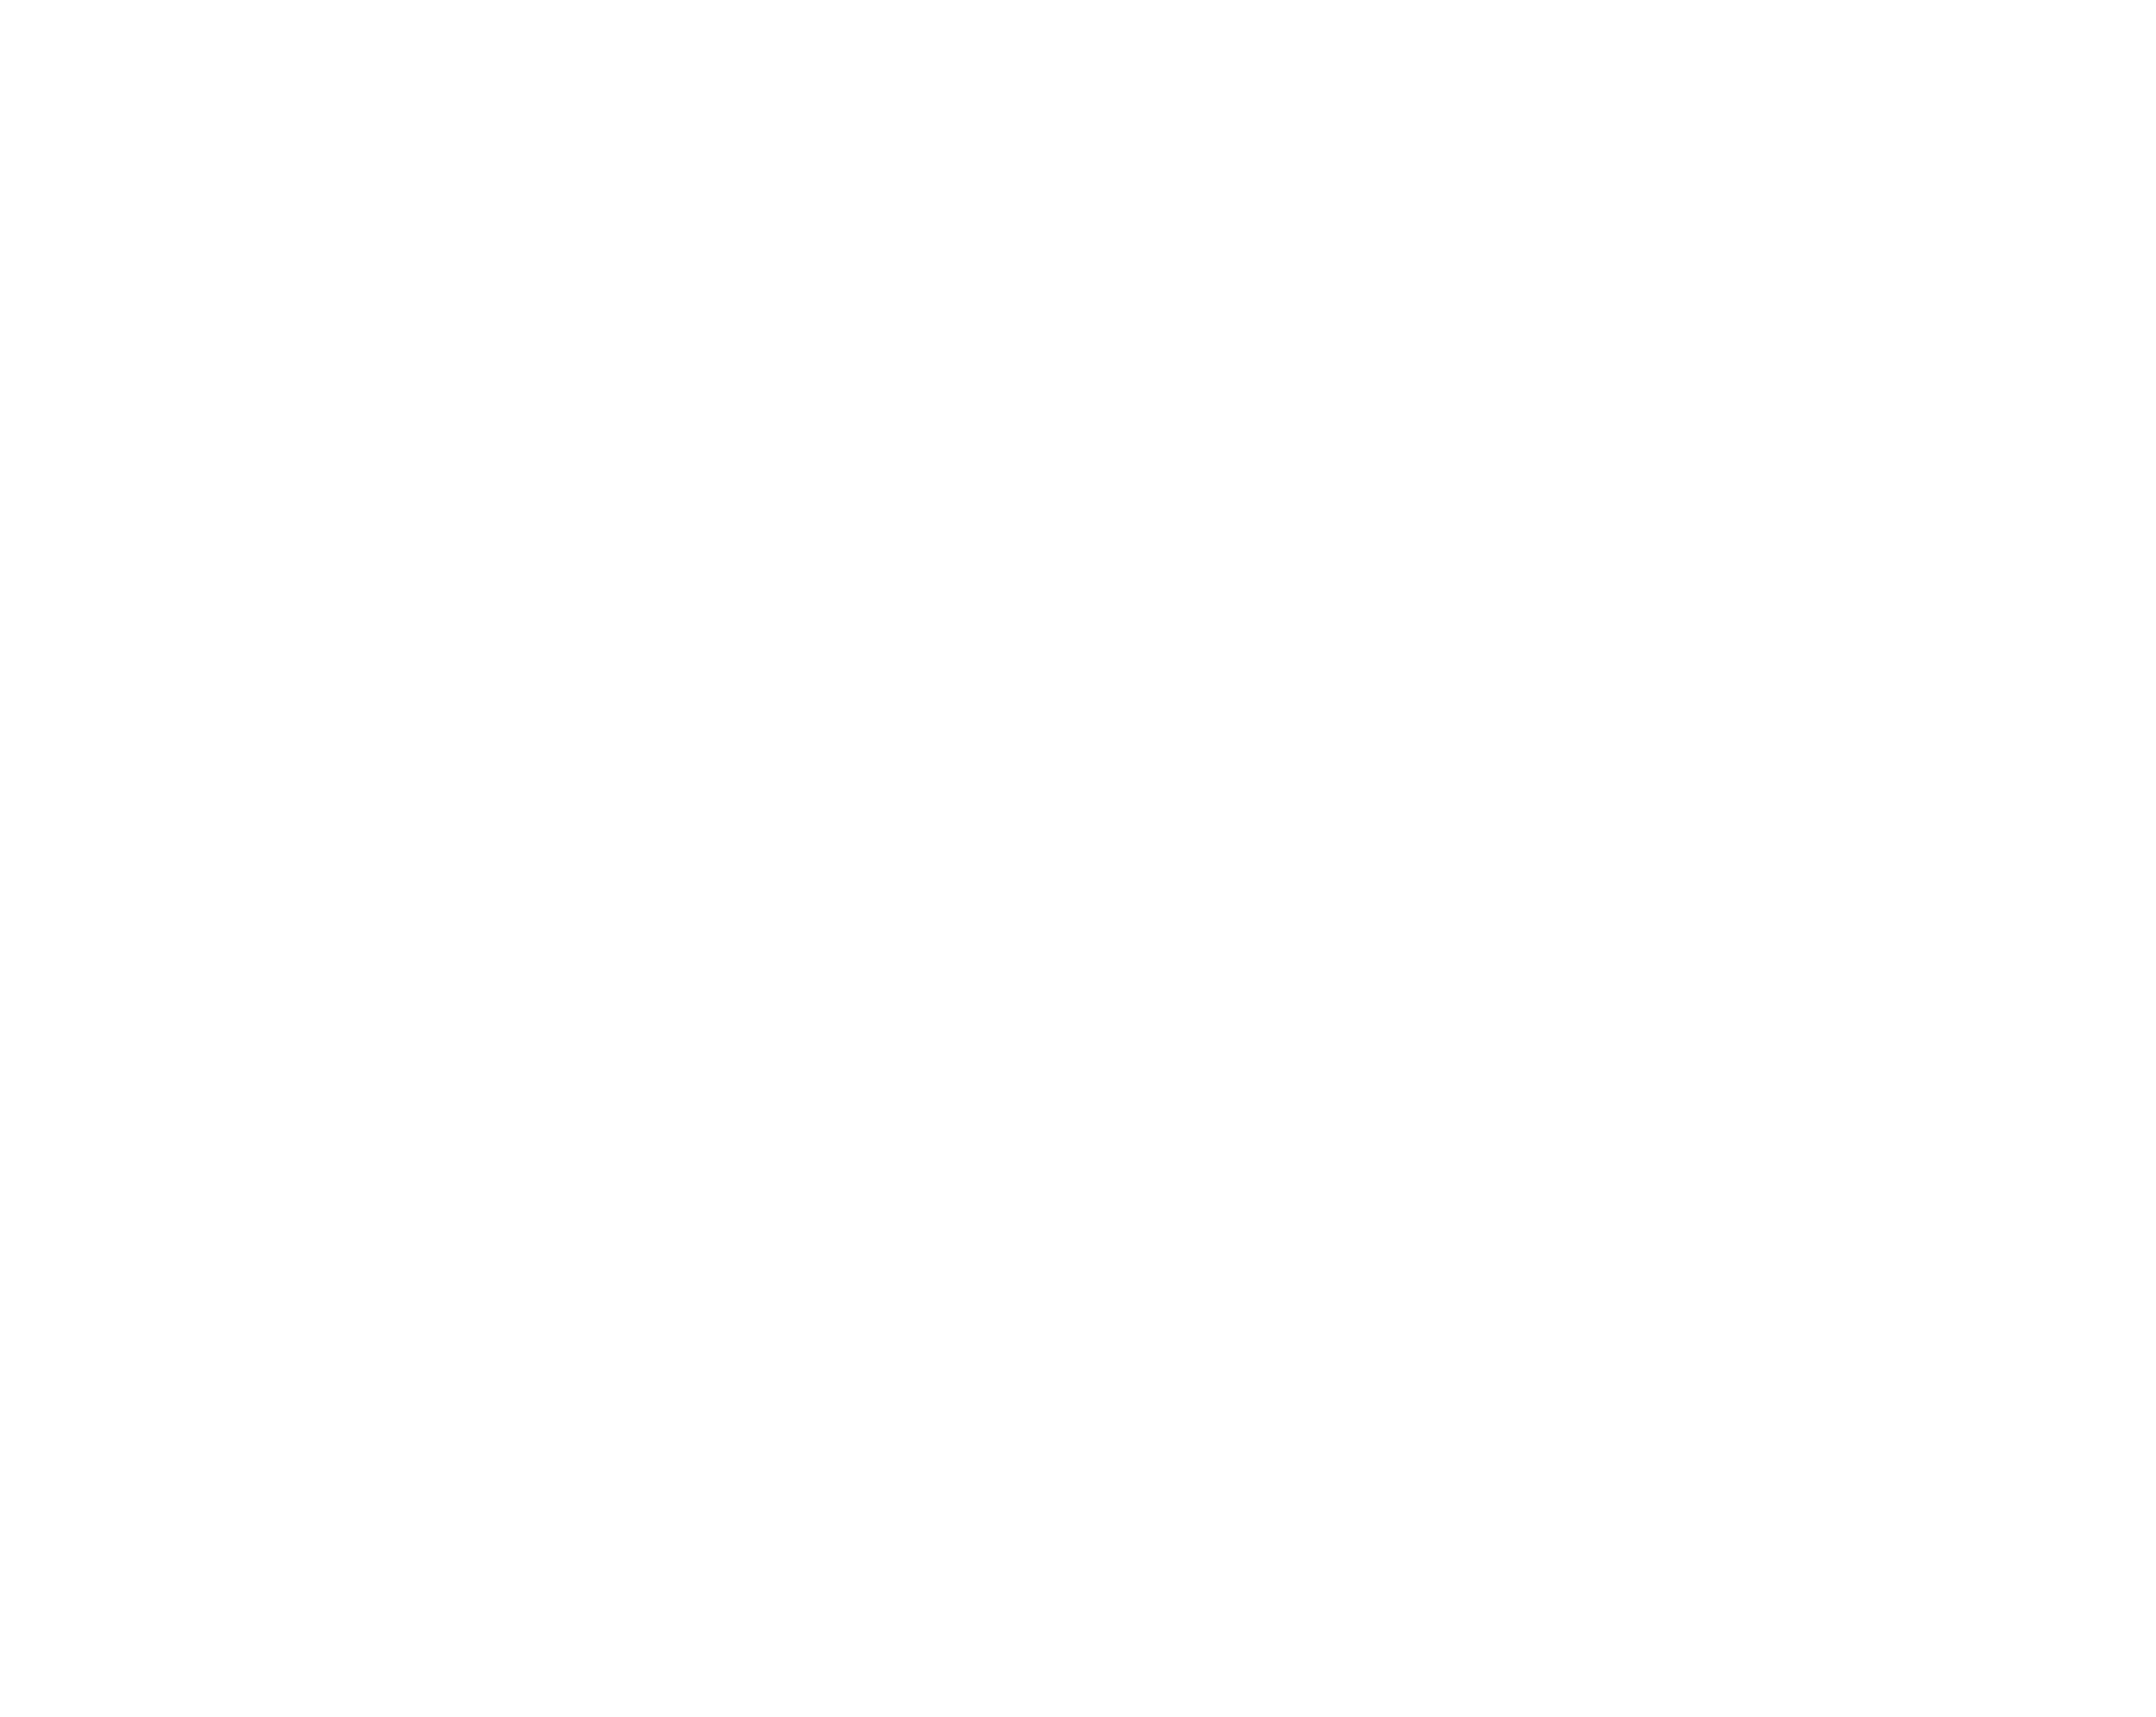 Motion Games